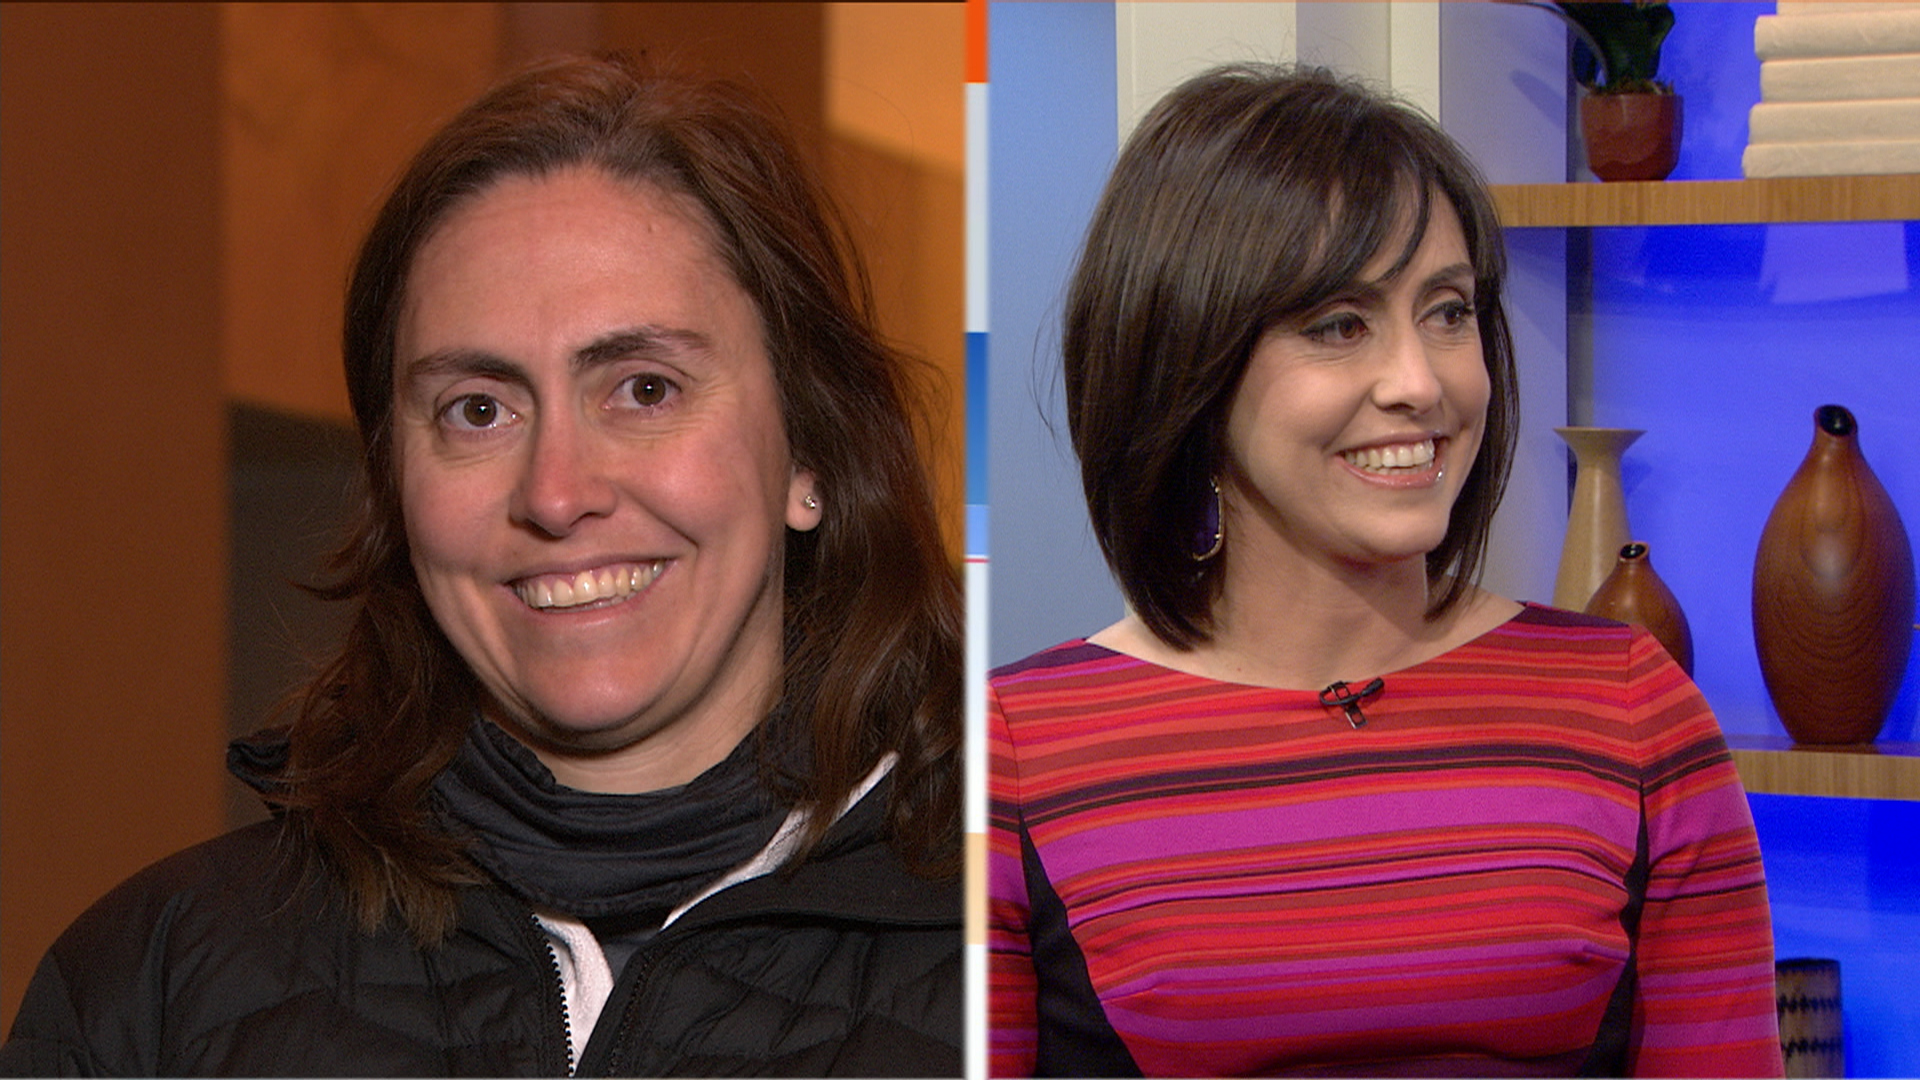 Caveman Makeover On Today Show : Ambush makeover daughters stunned by stylish mom today